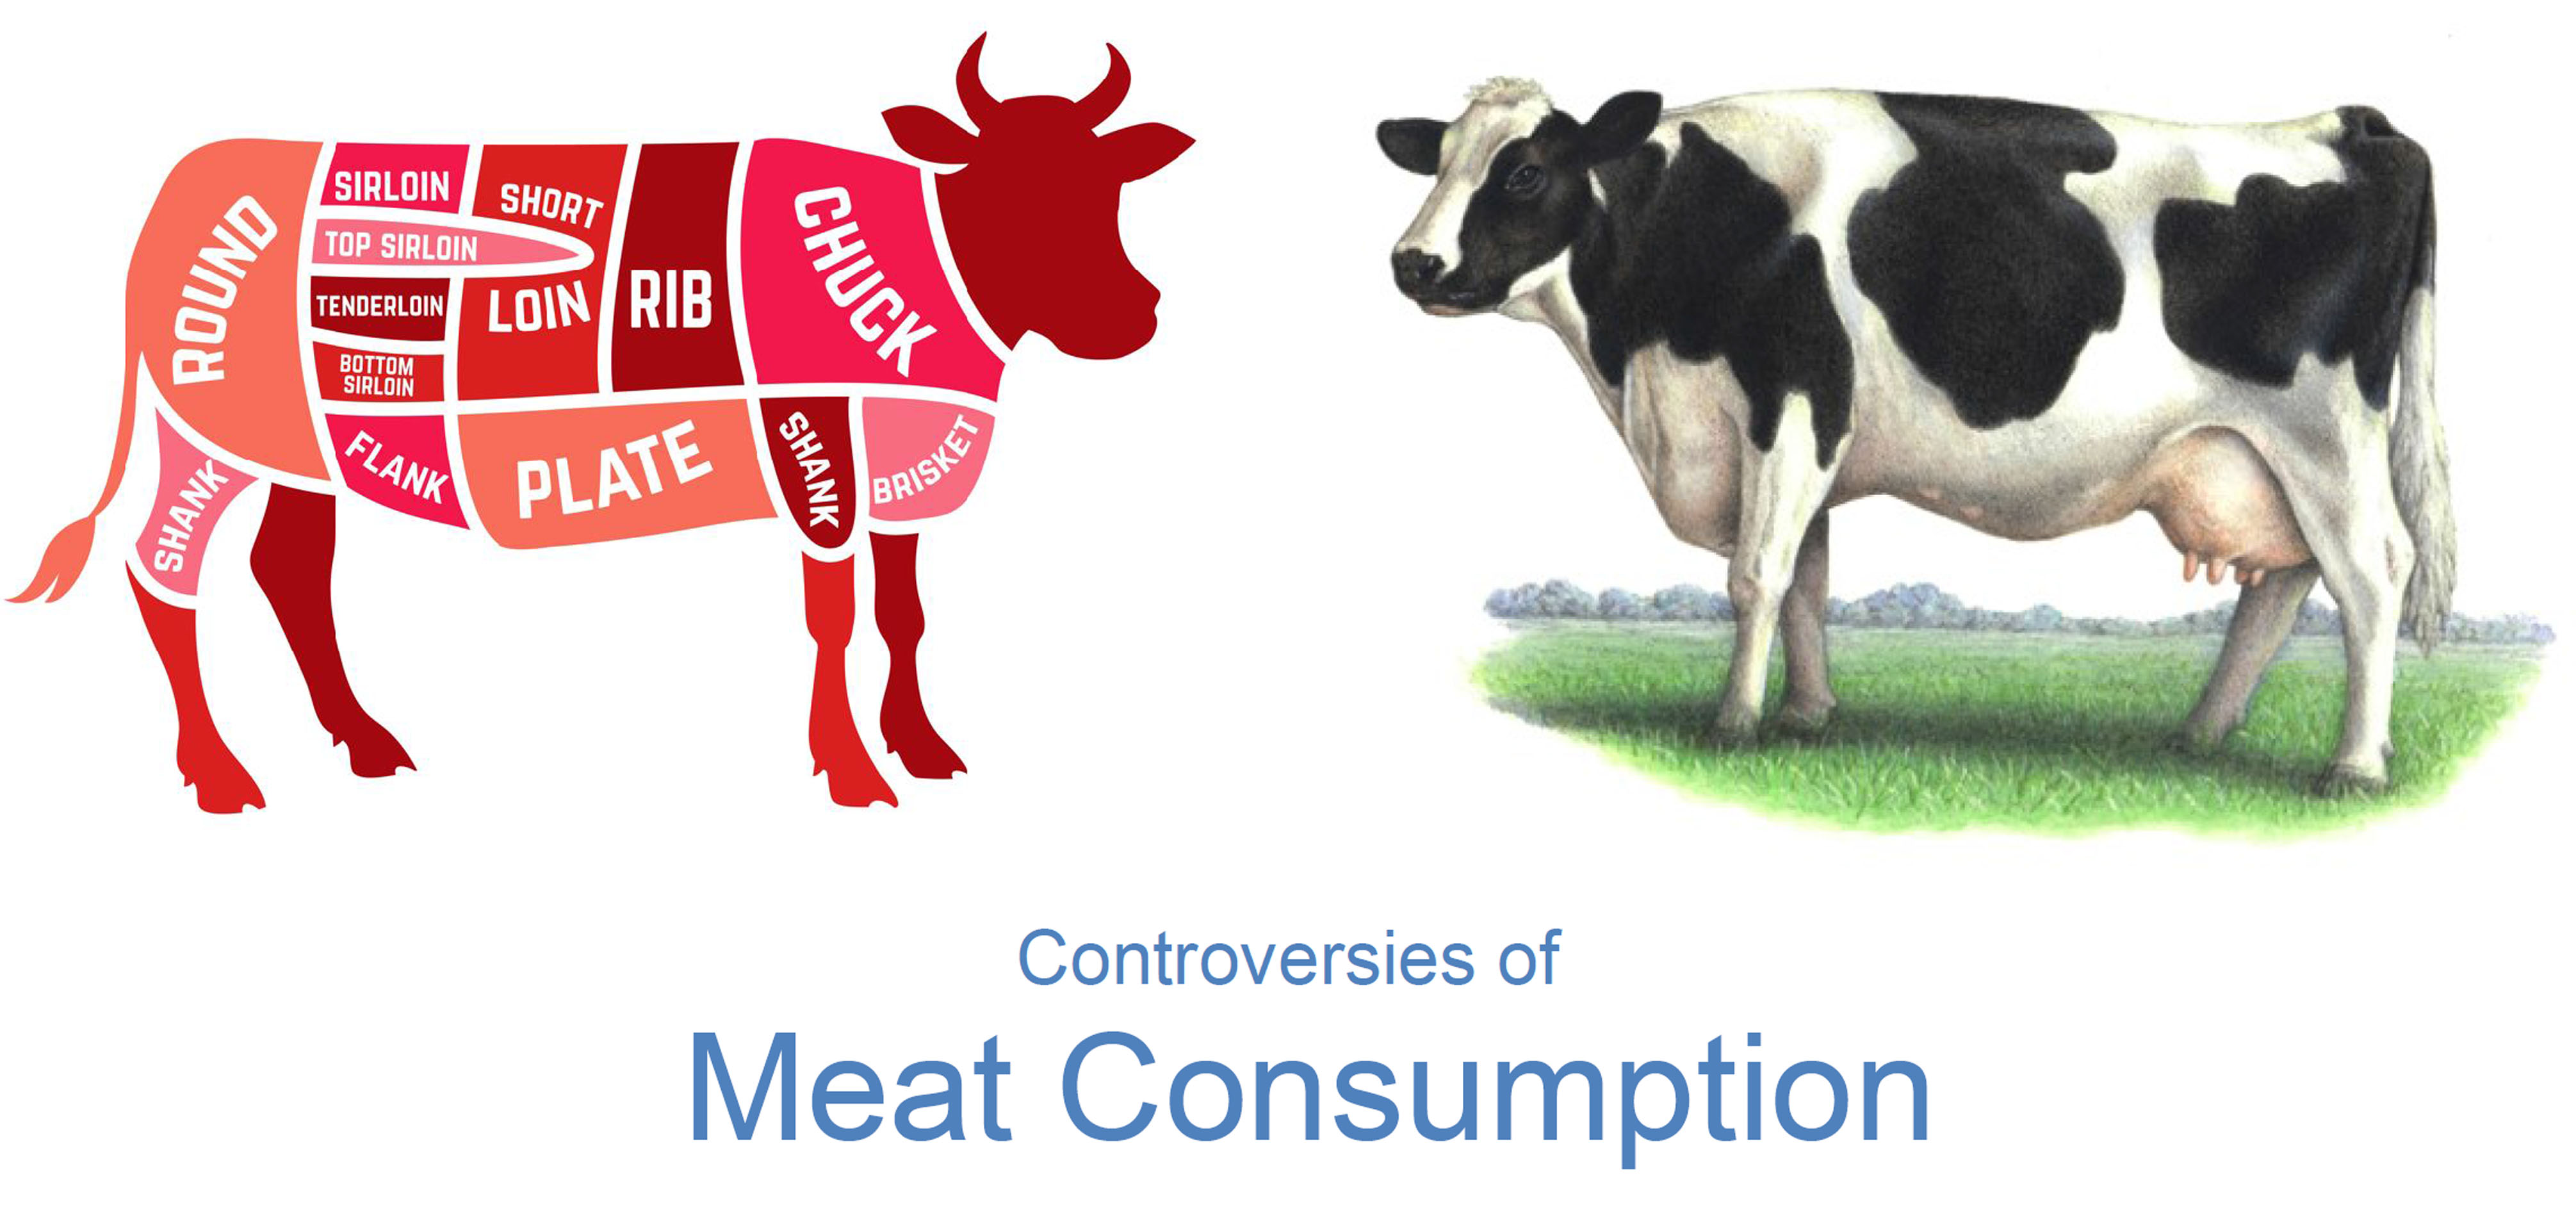 Exemple dossier controverse : Meat consumption